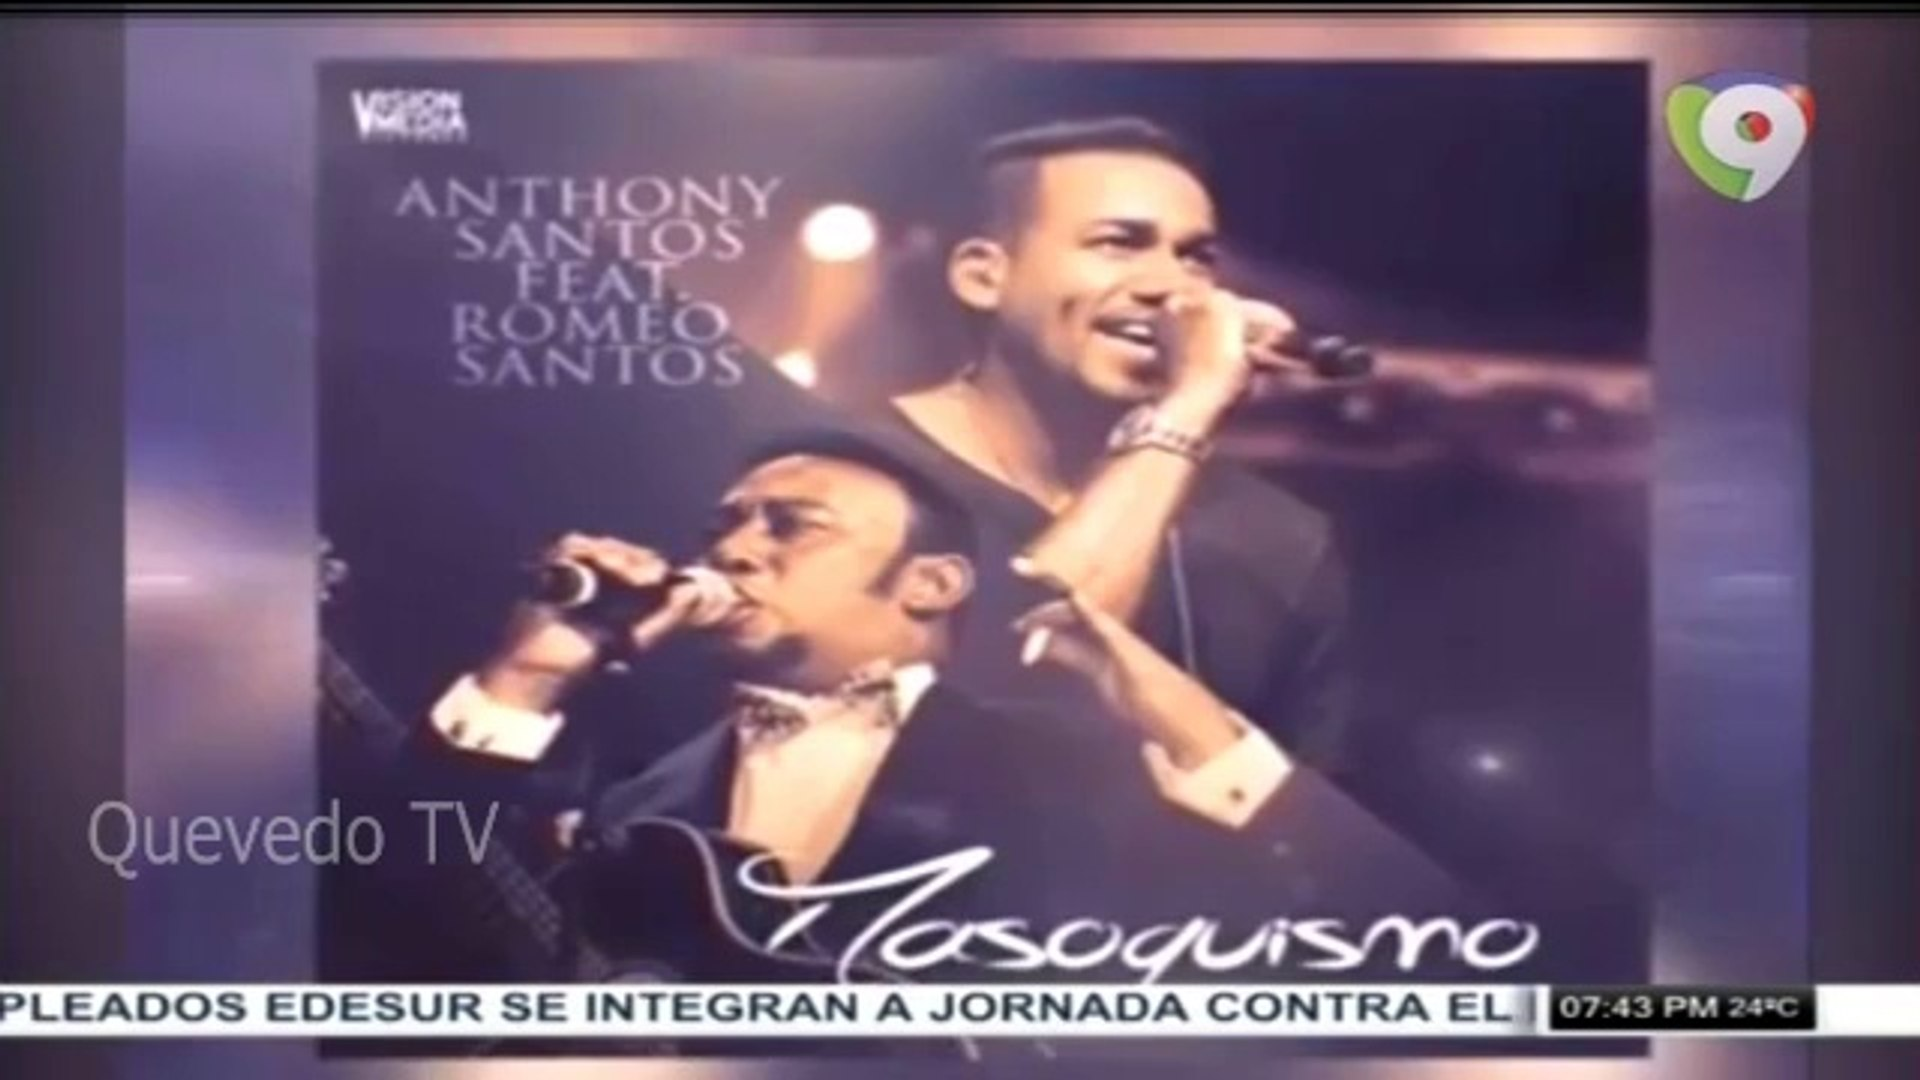 Anthony Santos Ft Romeo Santos - Masoquismo